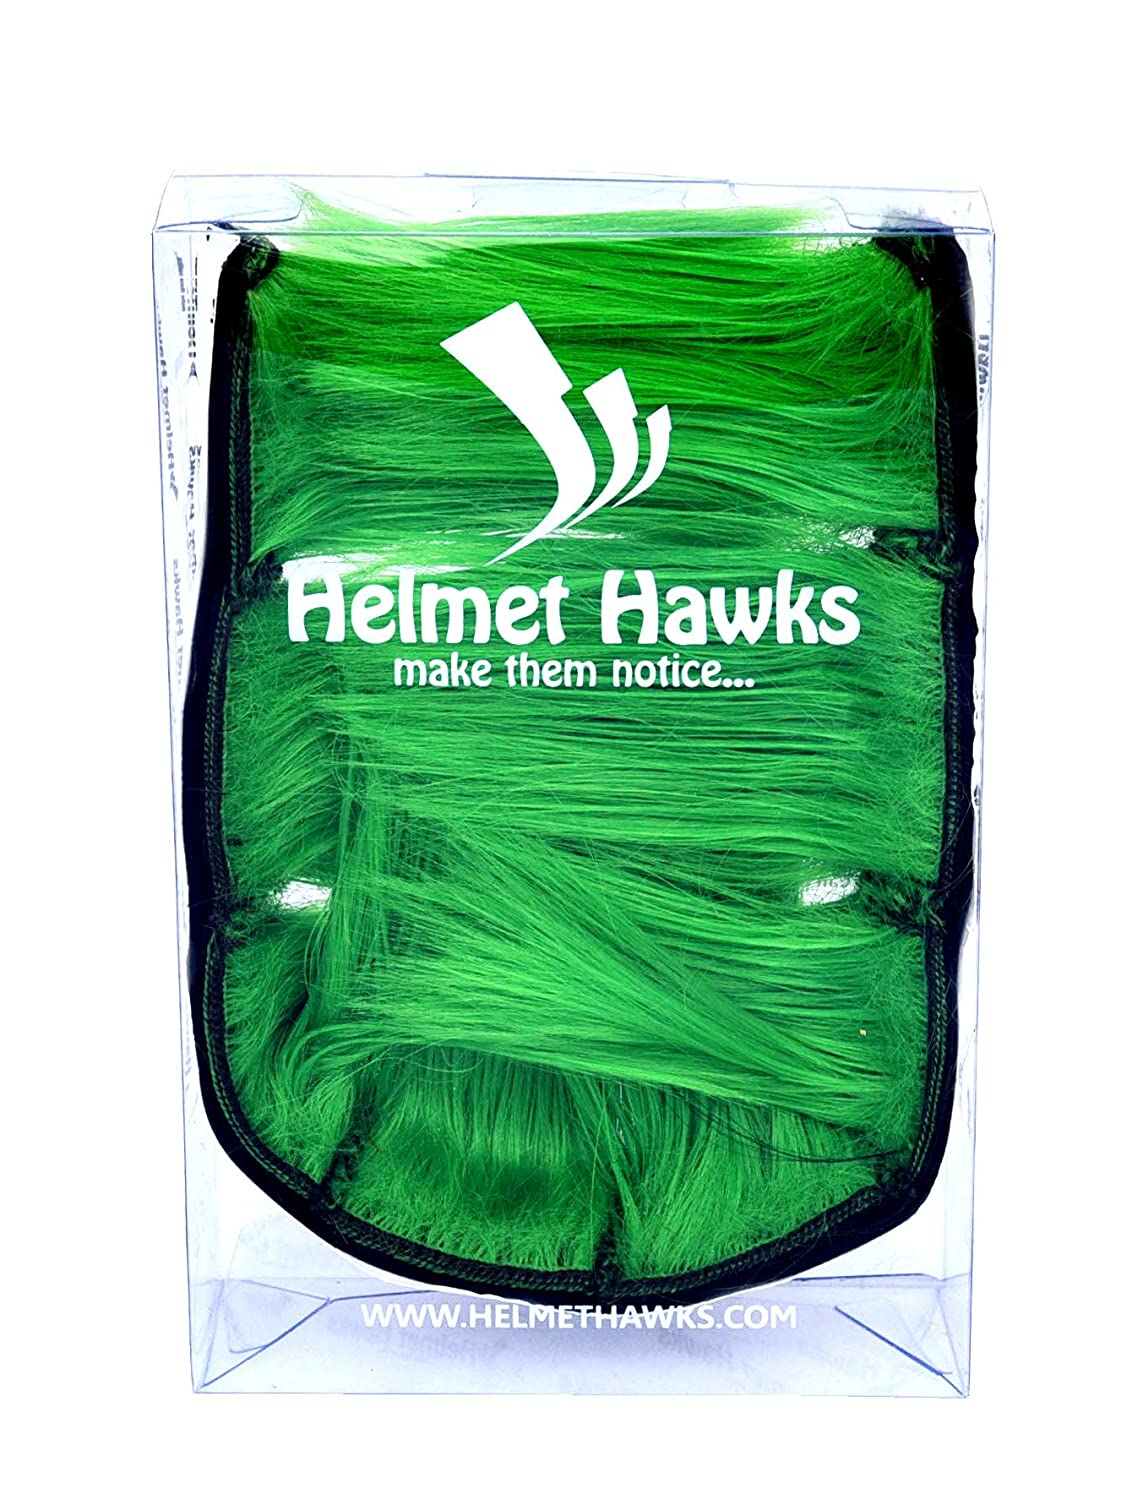 Candy Red 8 Helmet Hawks Motorcycle Ski or Snowboard Helmet Mohawk w//Sticky Hook and Loop Fastener Adhesive Hair Patches 2 long x 3 Tall